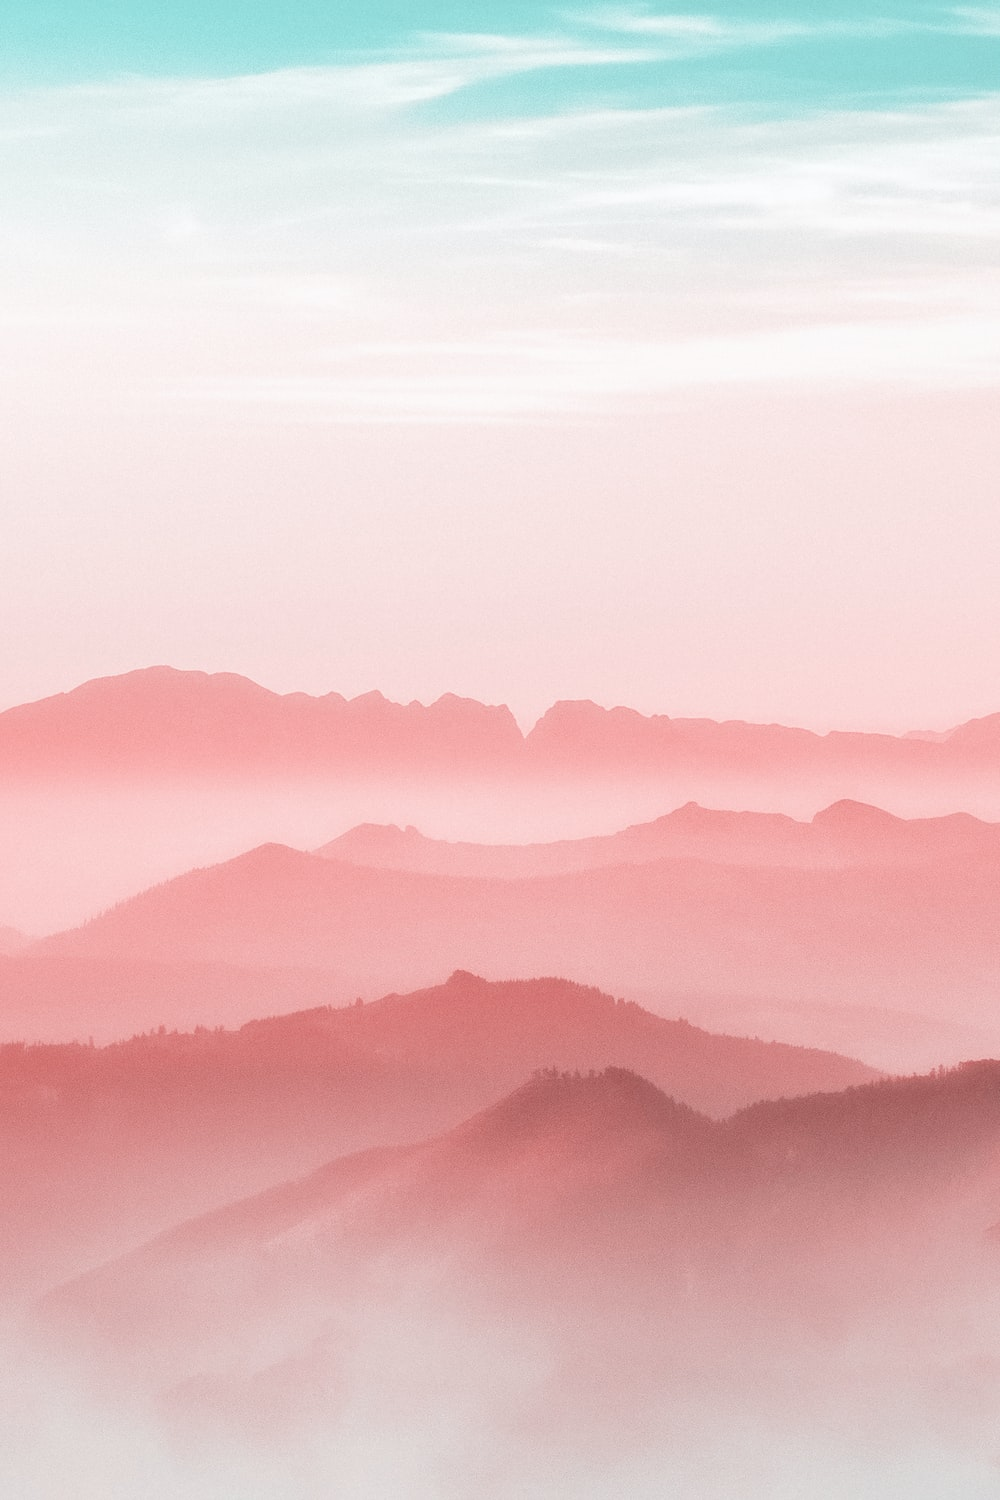 Aesthetic Wallpapers Free Hd Download 500 Hq Unsplash